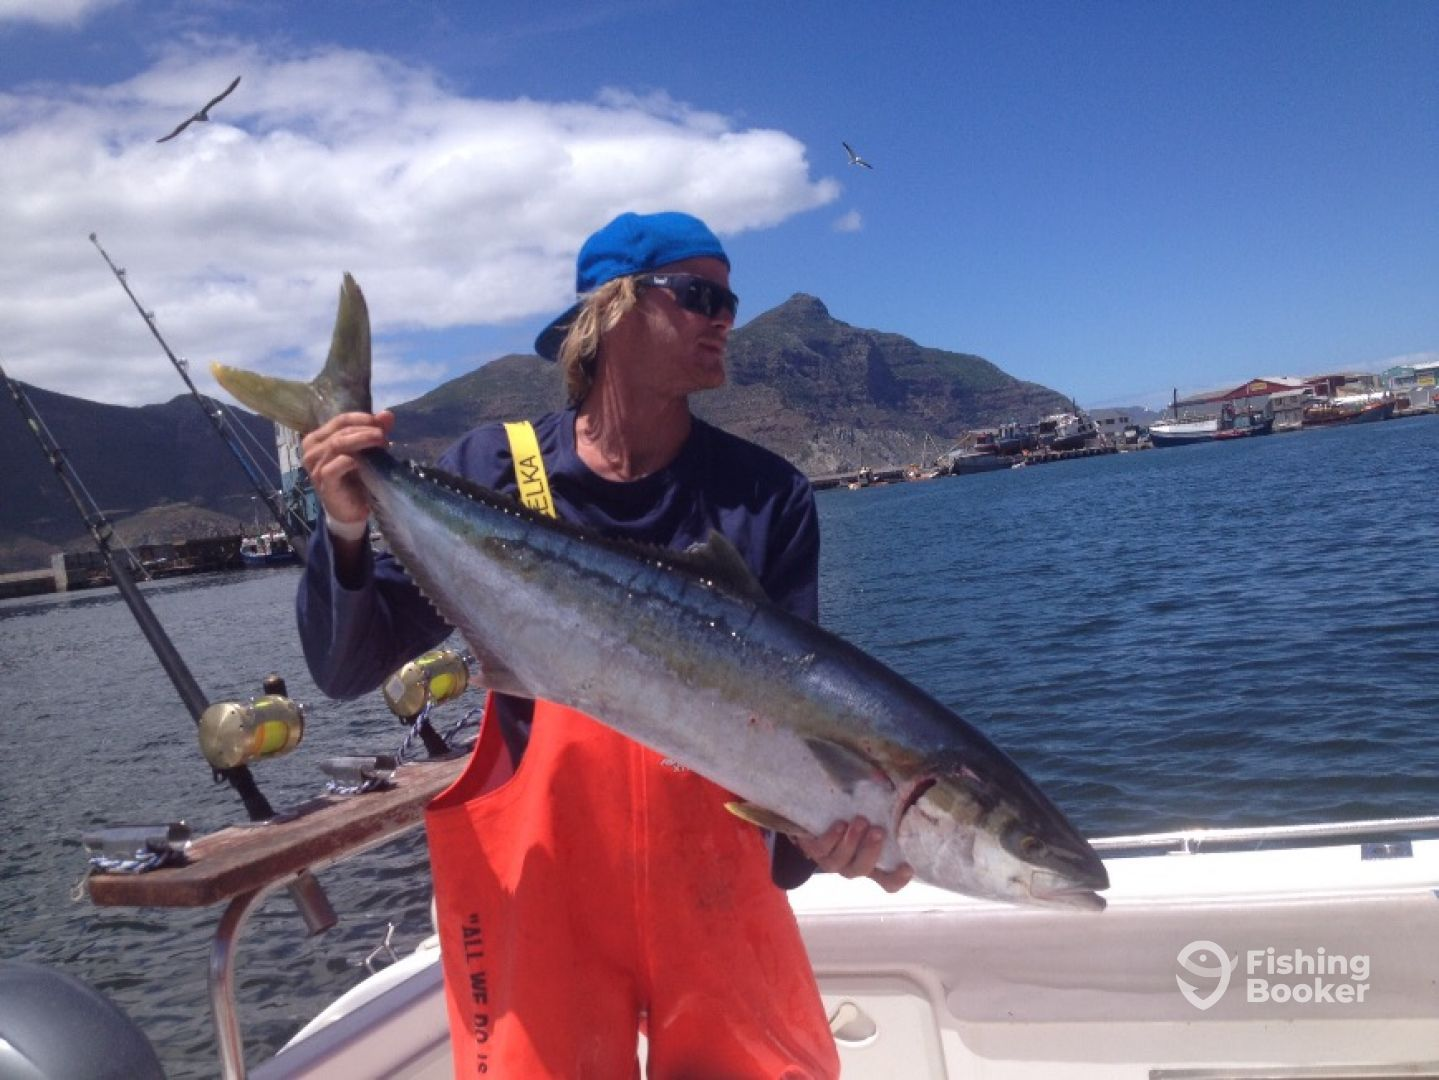 I just found Cape Town Fishing Charters on FishingBooker